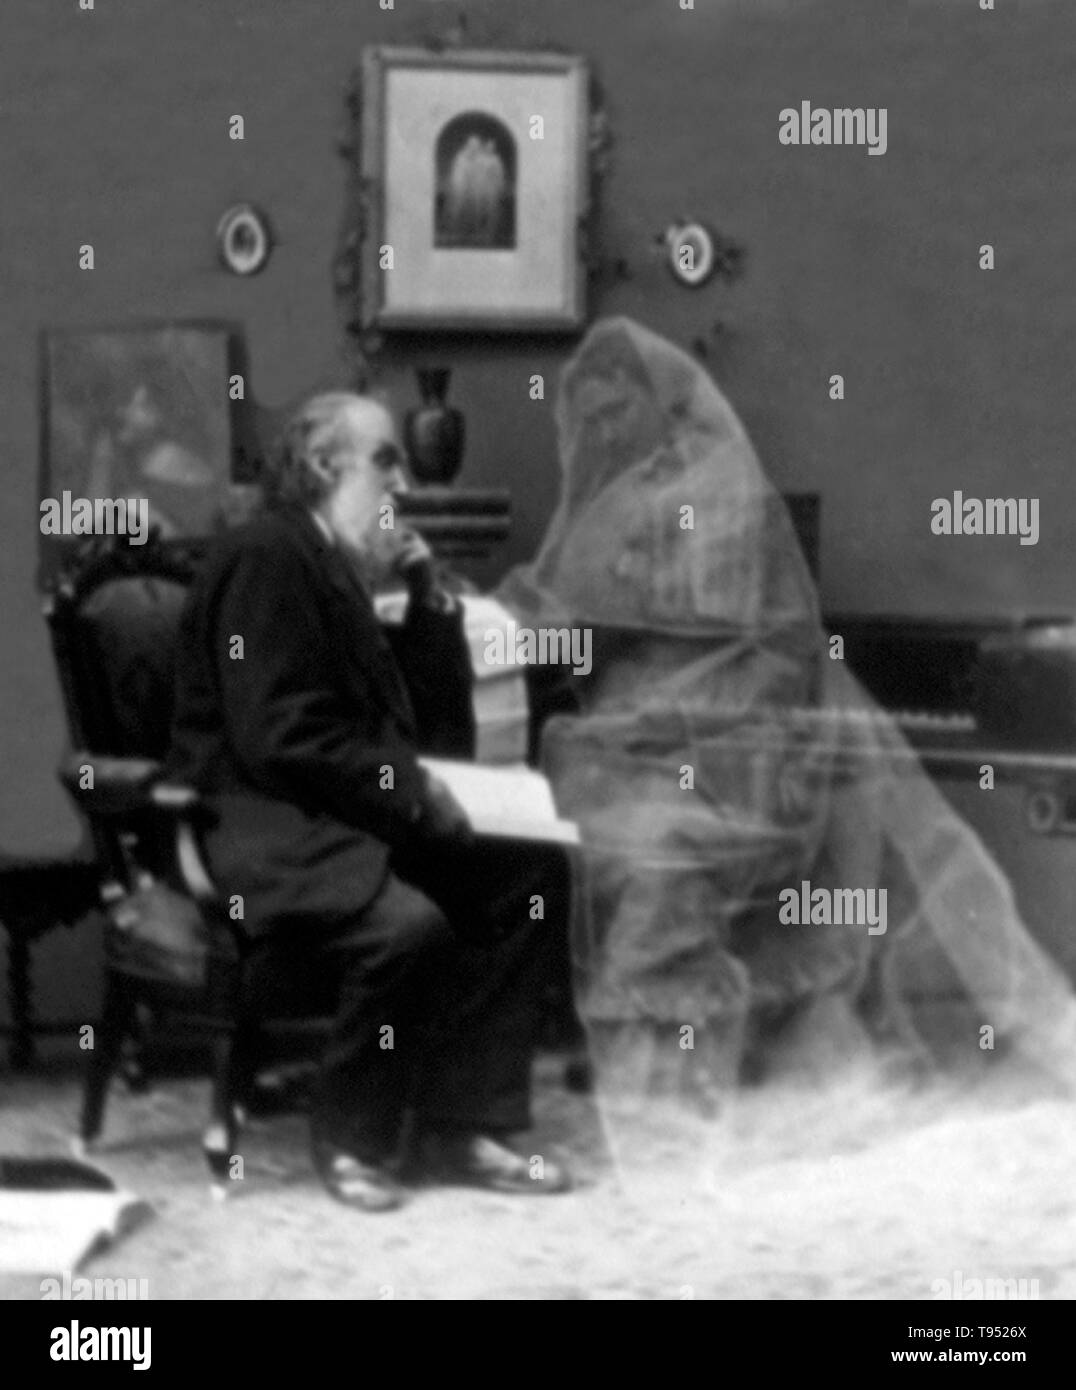 Entitled: 'Memories of the past' shows an old man seated and envisioning his wife in wedding gown. In the late 19th century amateur and commercial photographers created images intended to astonish, amuse, and entertain. The photographs were altered using a variety of techniques, including multiple exposure (taking two or more pictures on a single negative), combination printing (producing a single print from elements of two or more negatives), photomontage, overpainting, and retouching on the negative or print. The meaning and content of the camera image was significantly transformed in the pr - Stock Image